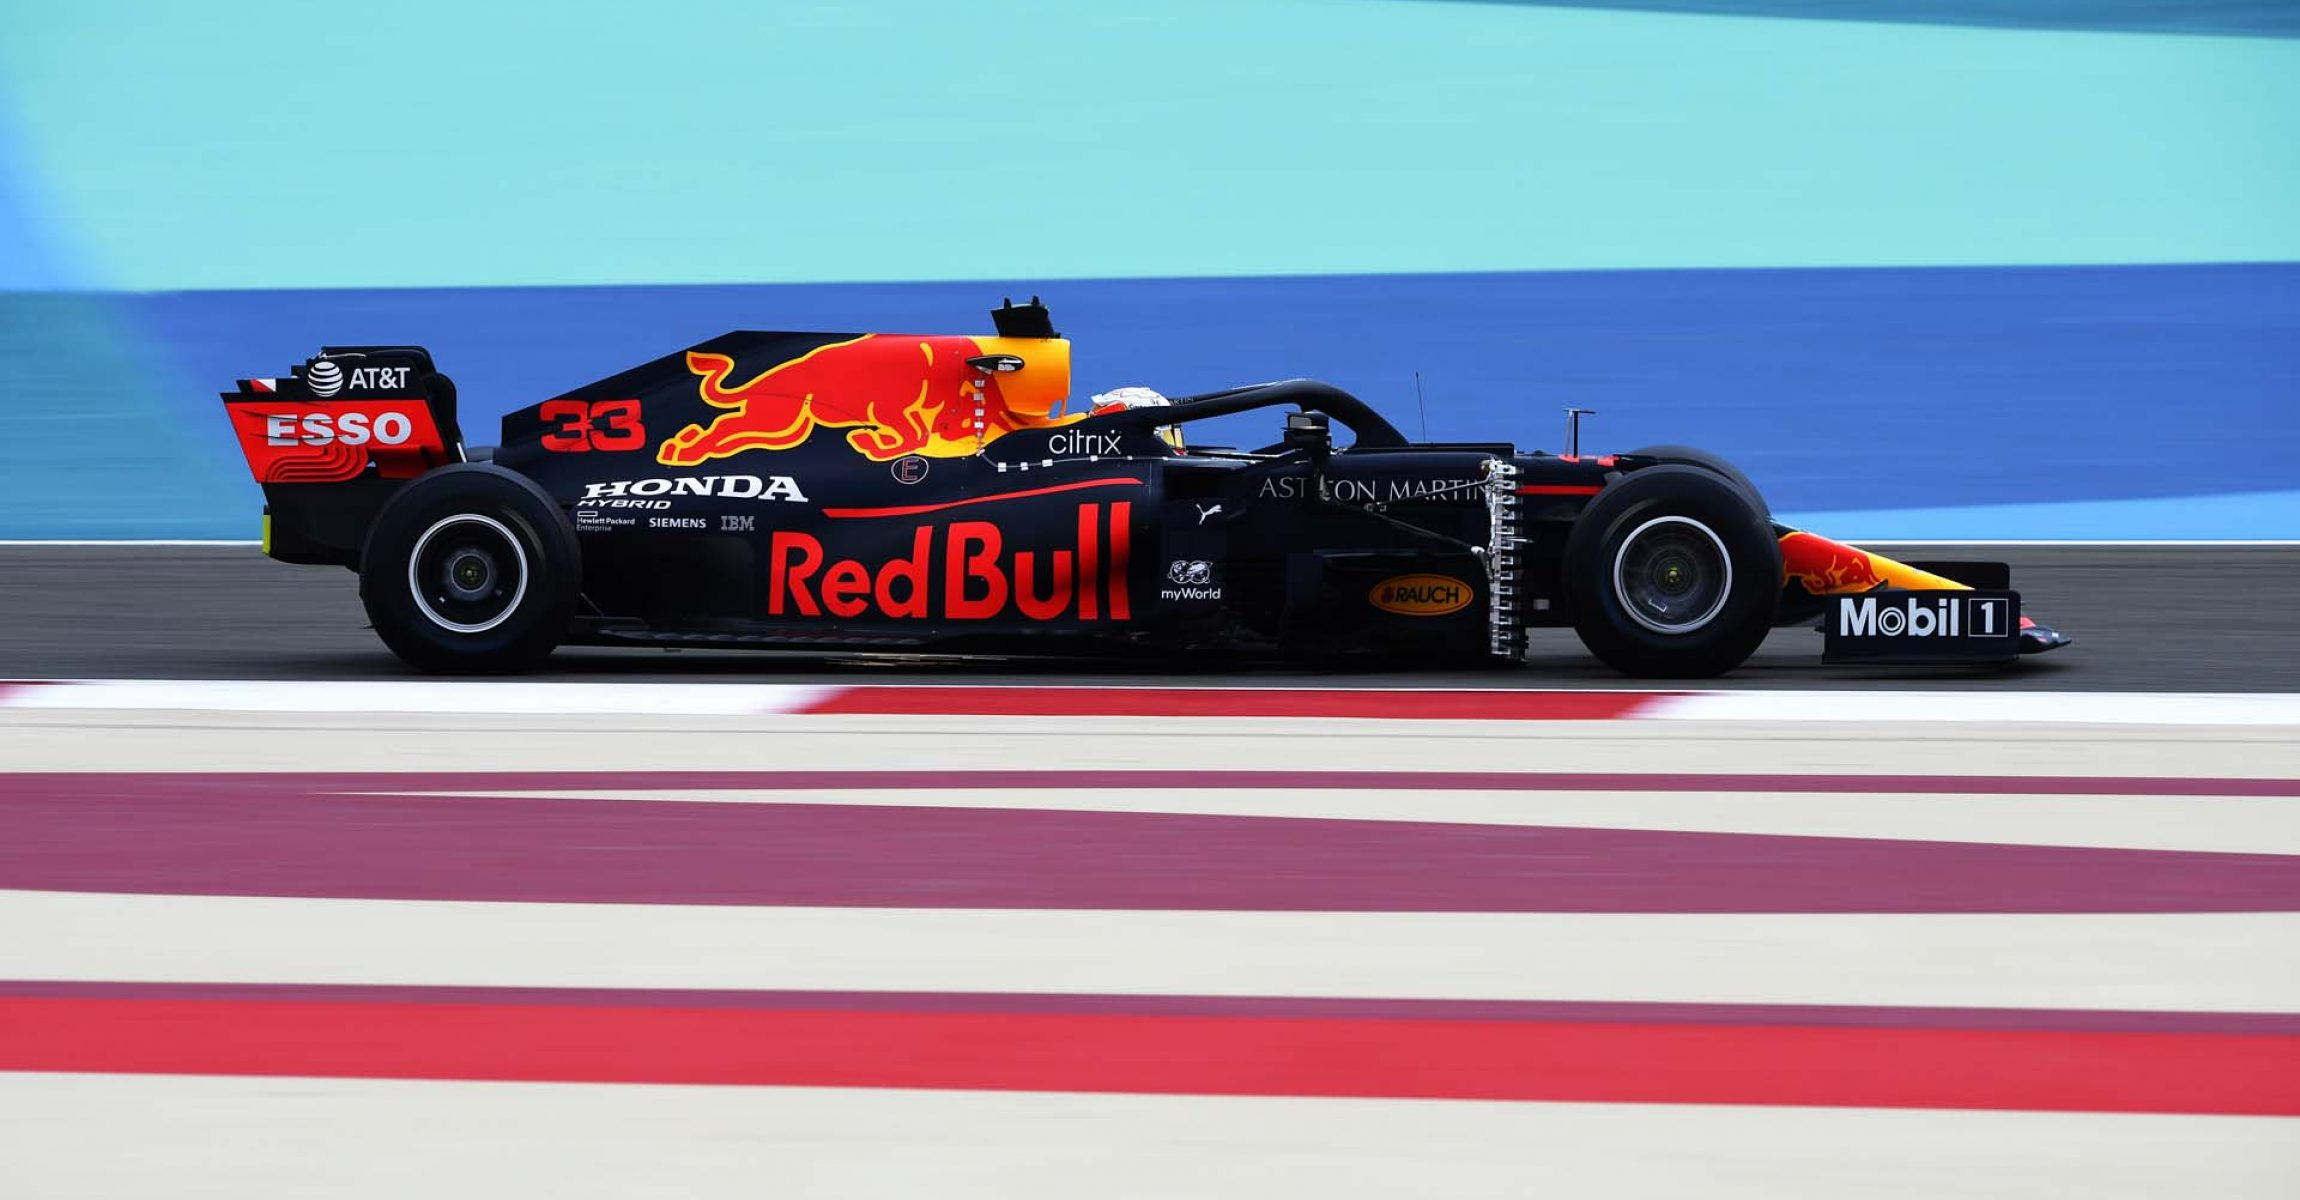 BAHRAIN, BAHRAIN - NOVEMBER 27: Max Verstappen of the Netherlands driving the (33) Aston Martin Red Bull Racing RB16 on track during practice ahead of the F1 Grand Prix of Bahrain at Bahrain International Circuit on November 27, 2020 in Bahrain, Bahrain. (Photo by Rudy Carezzevoli/Getty Images)